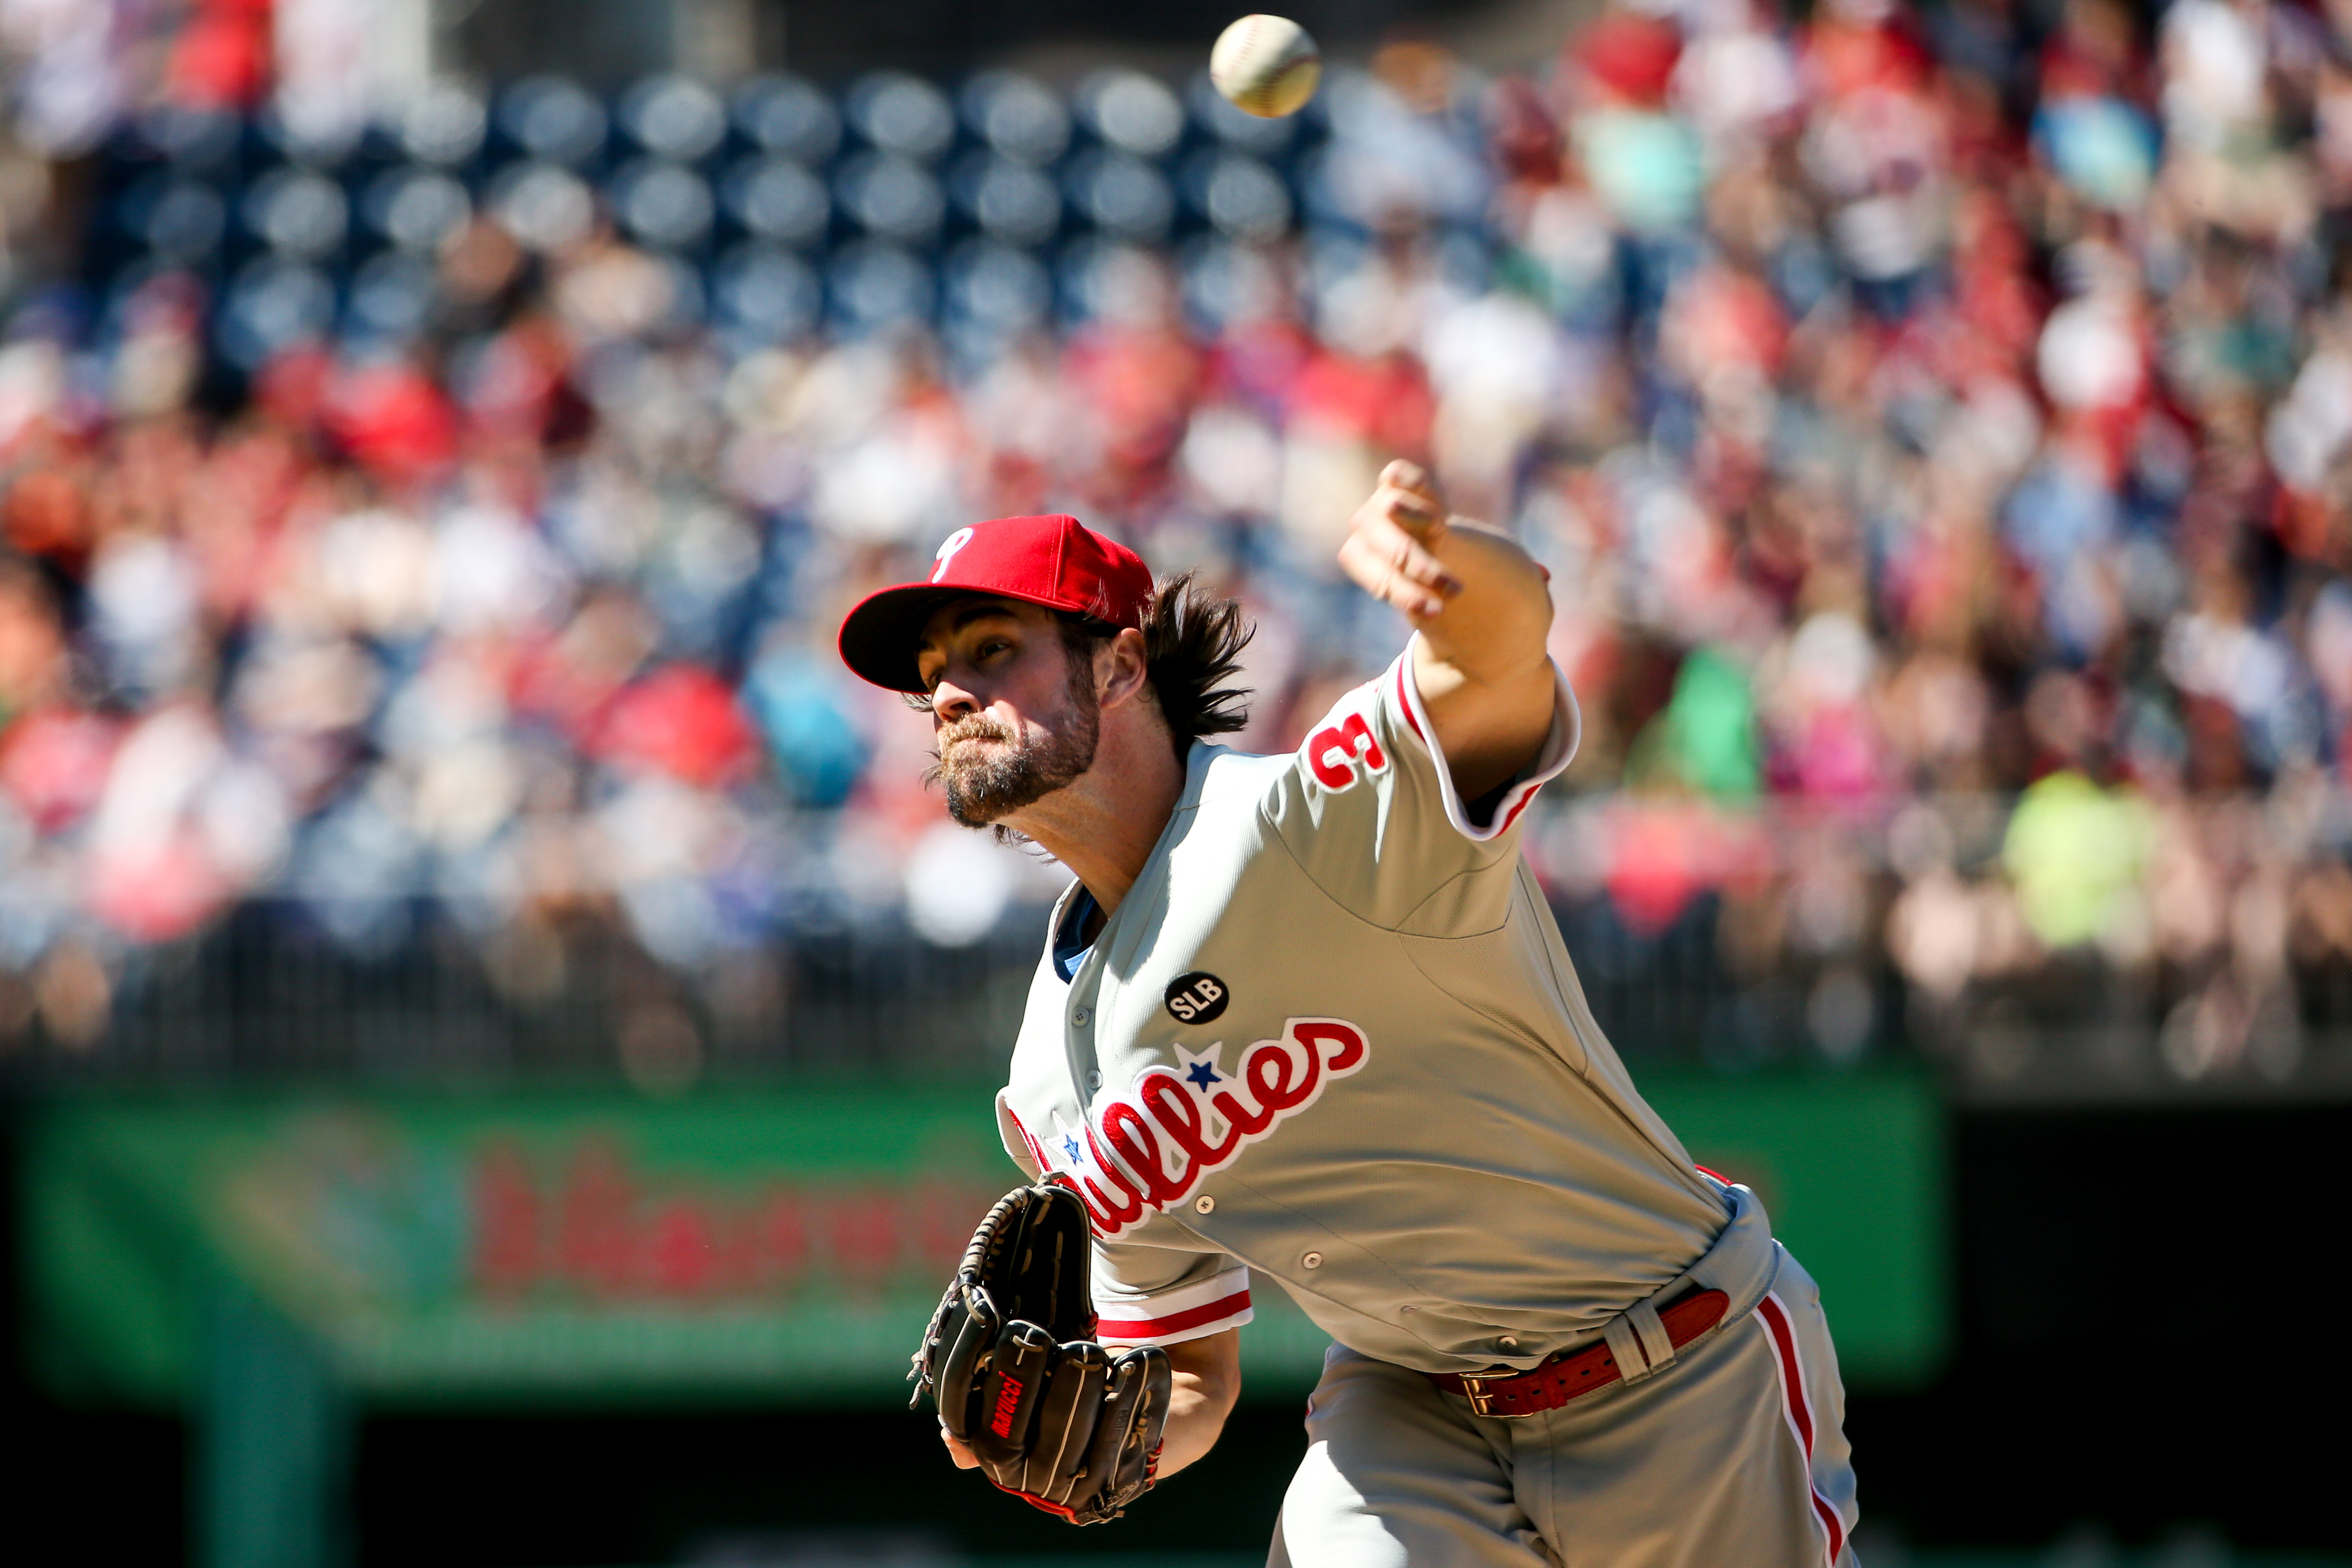 Philadelphia Phillies starting pitcher Cole Hamels (35) pitches pitches in the first inning of a baseball game against the Washington Nationals at Nationals Park, Saturday, May 23, 2015, in Washington. (AP Photo/Andrew Harnik)